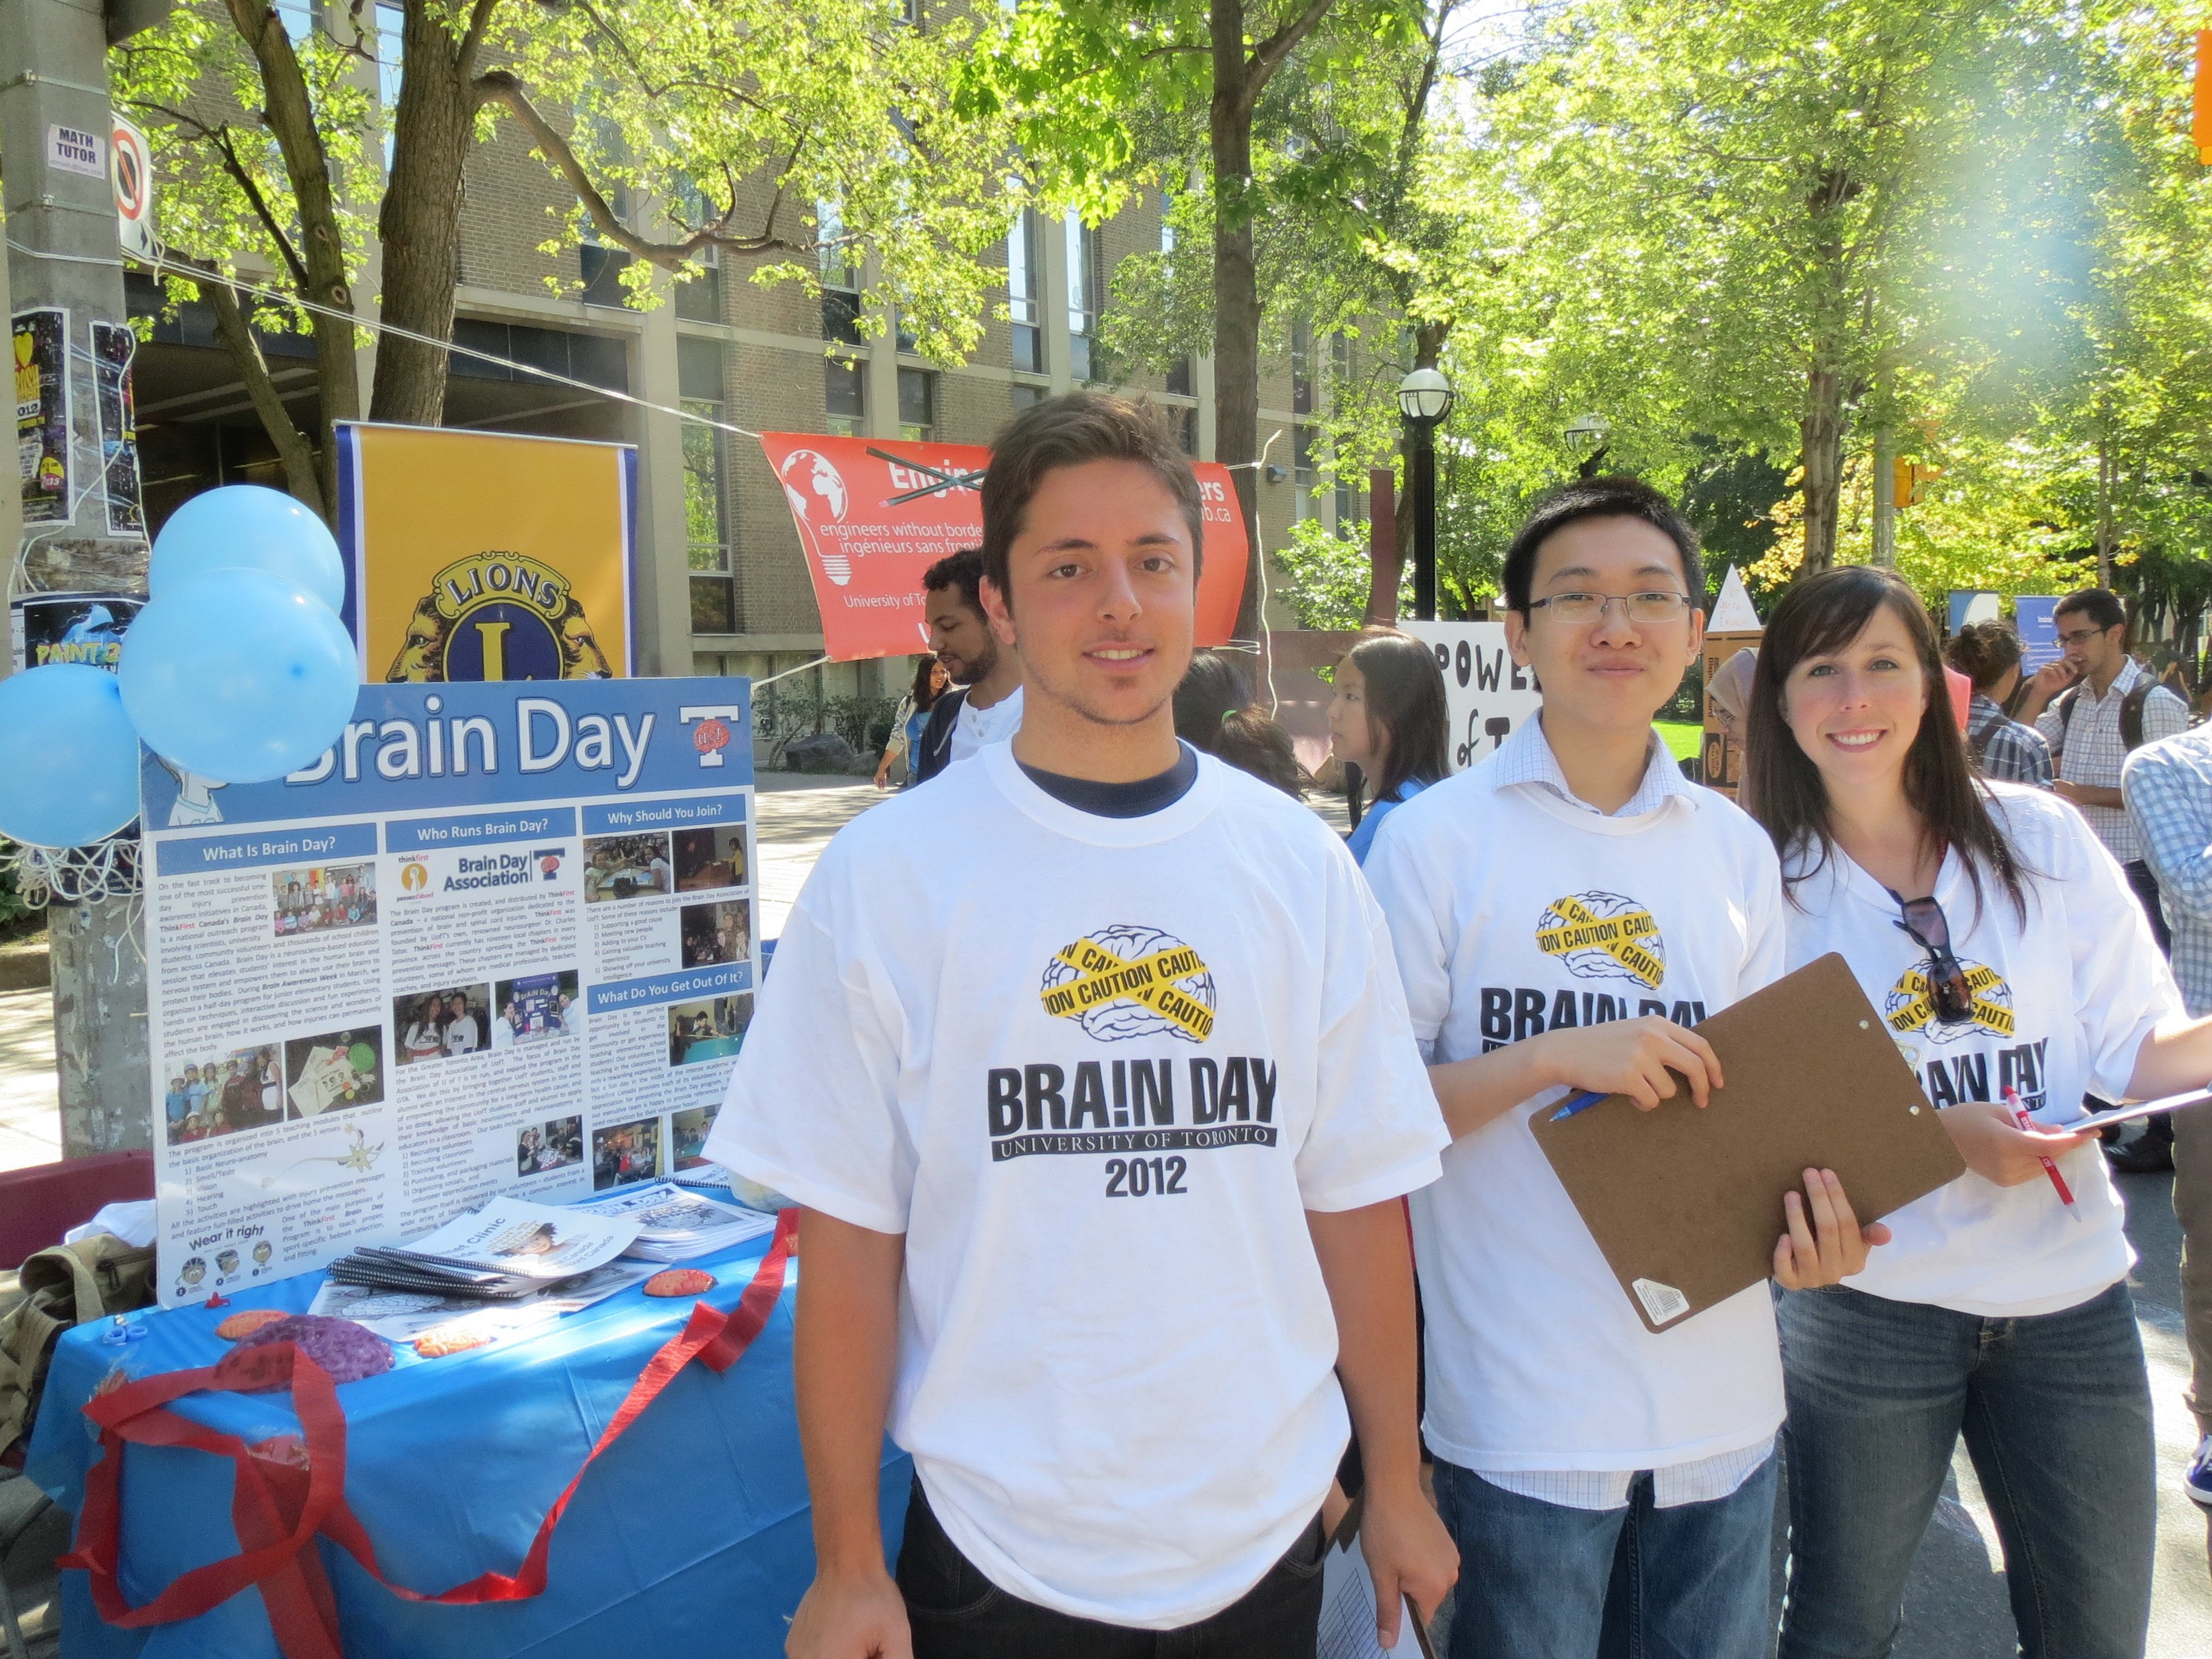 Brain Day Info Booth @ St. George Street Festival